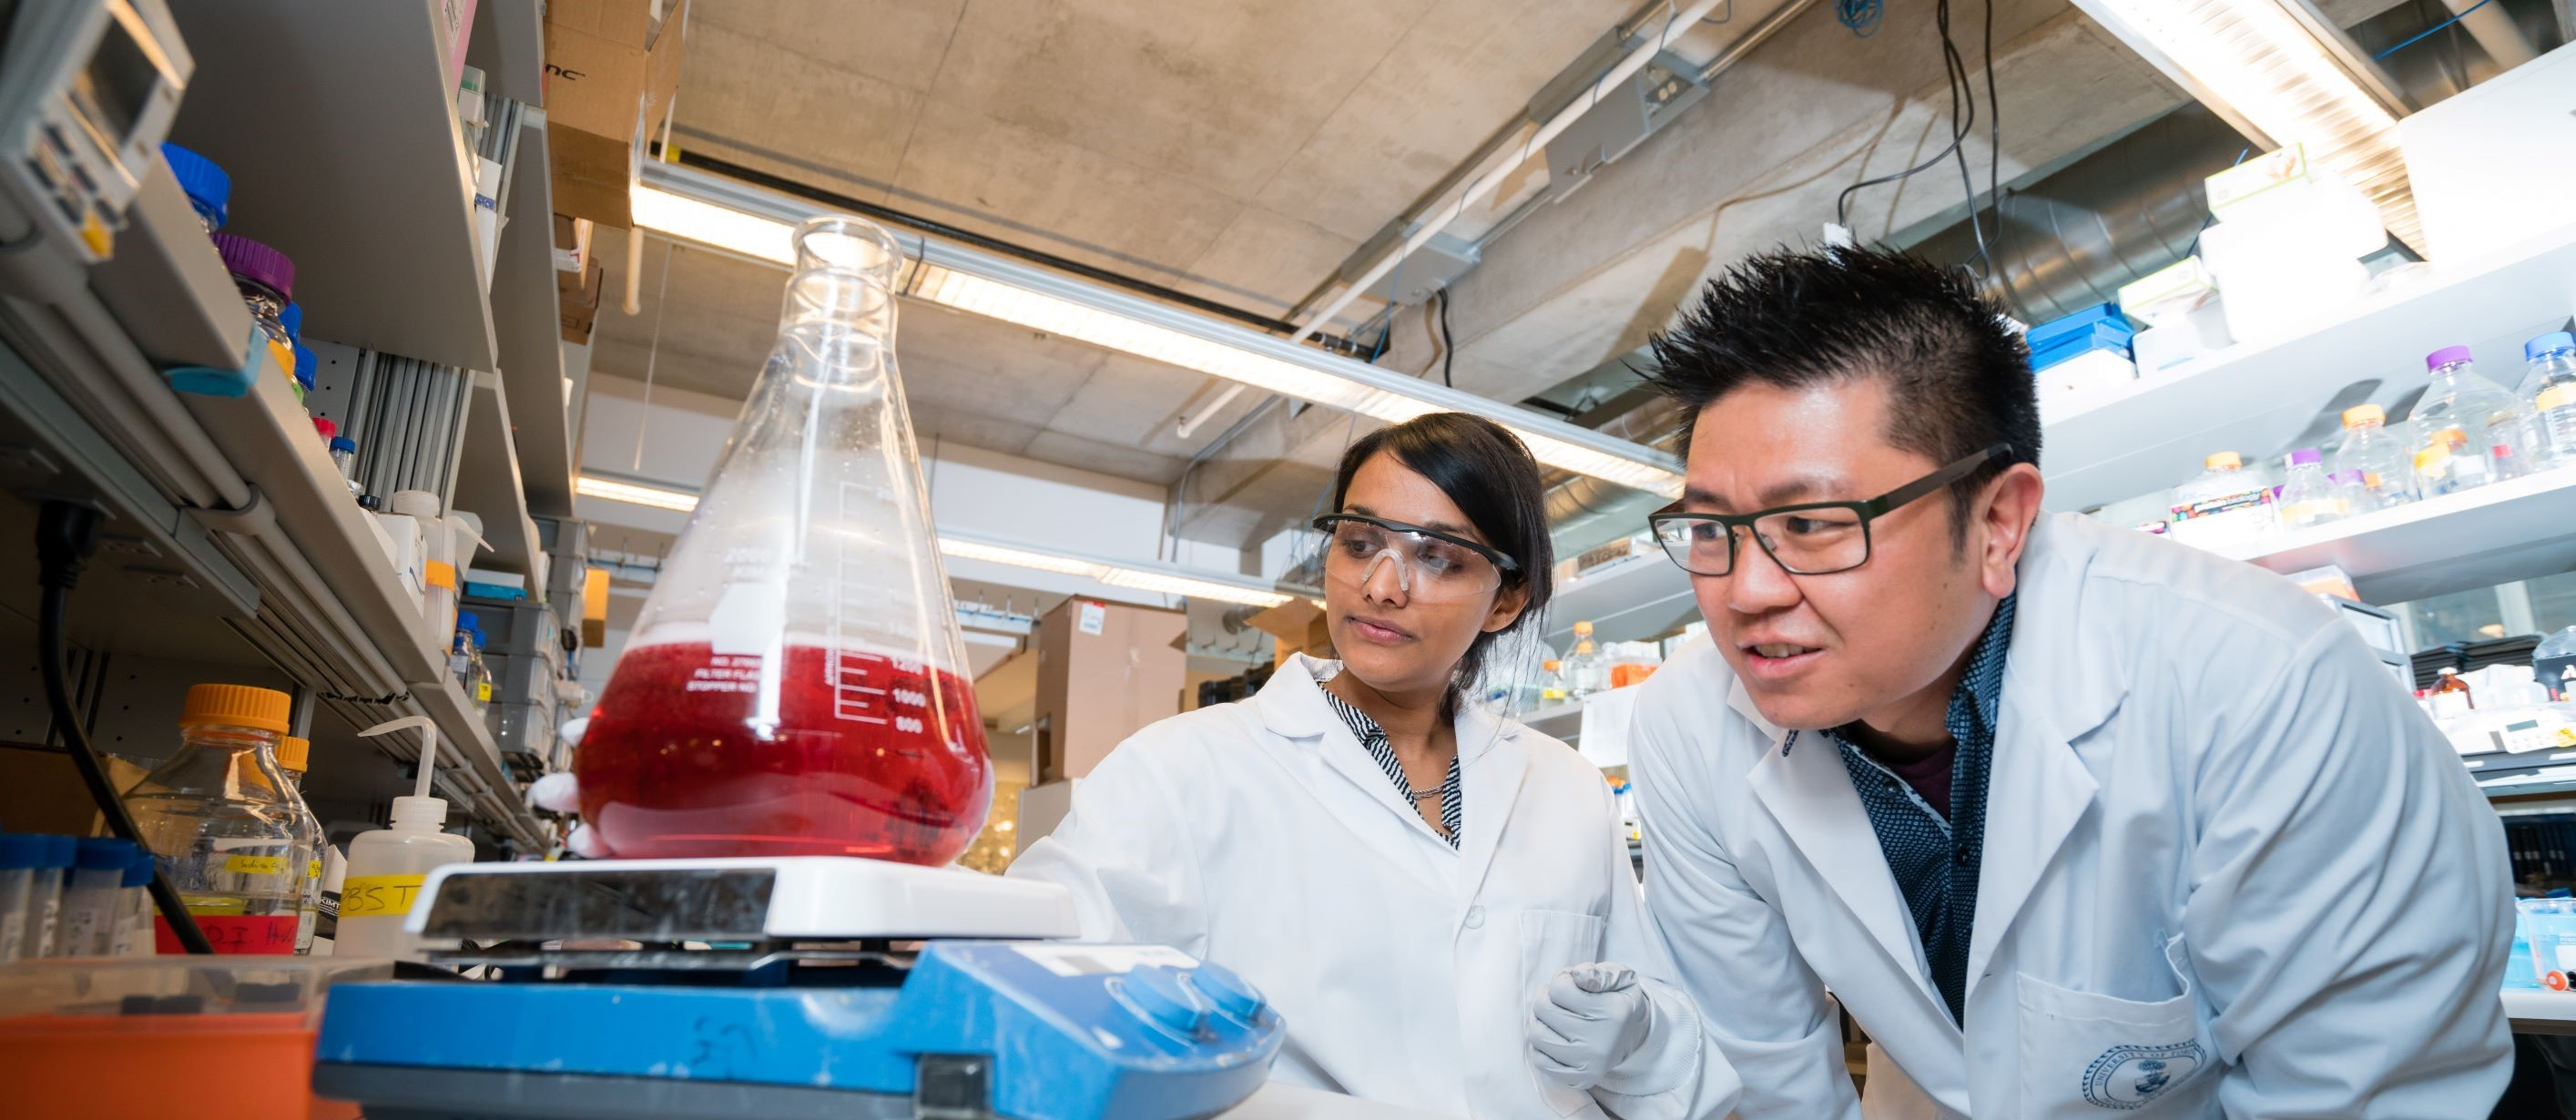 Warren Chan and student examining reagent in lab